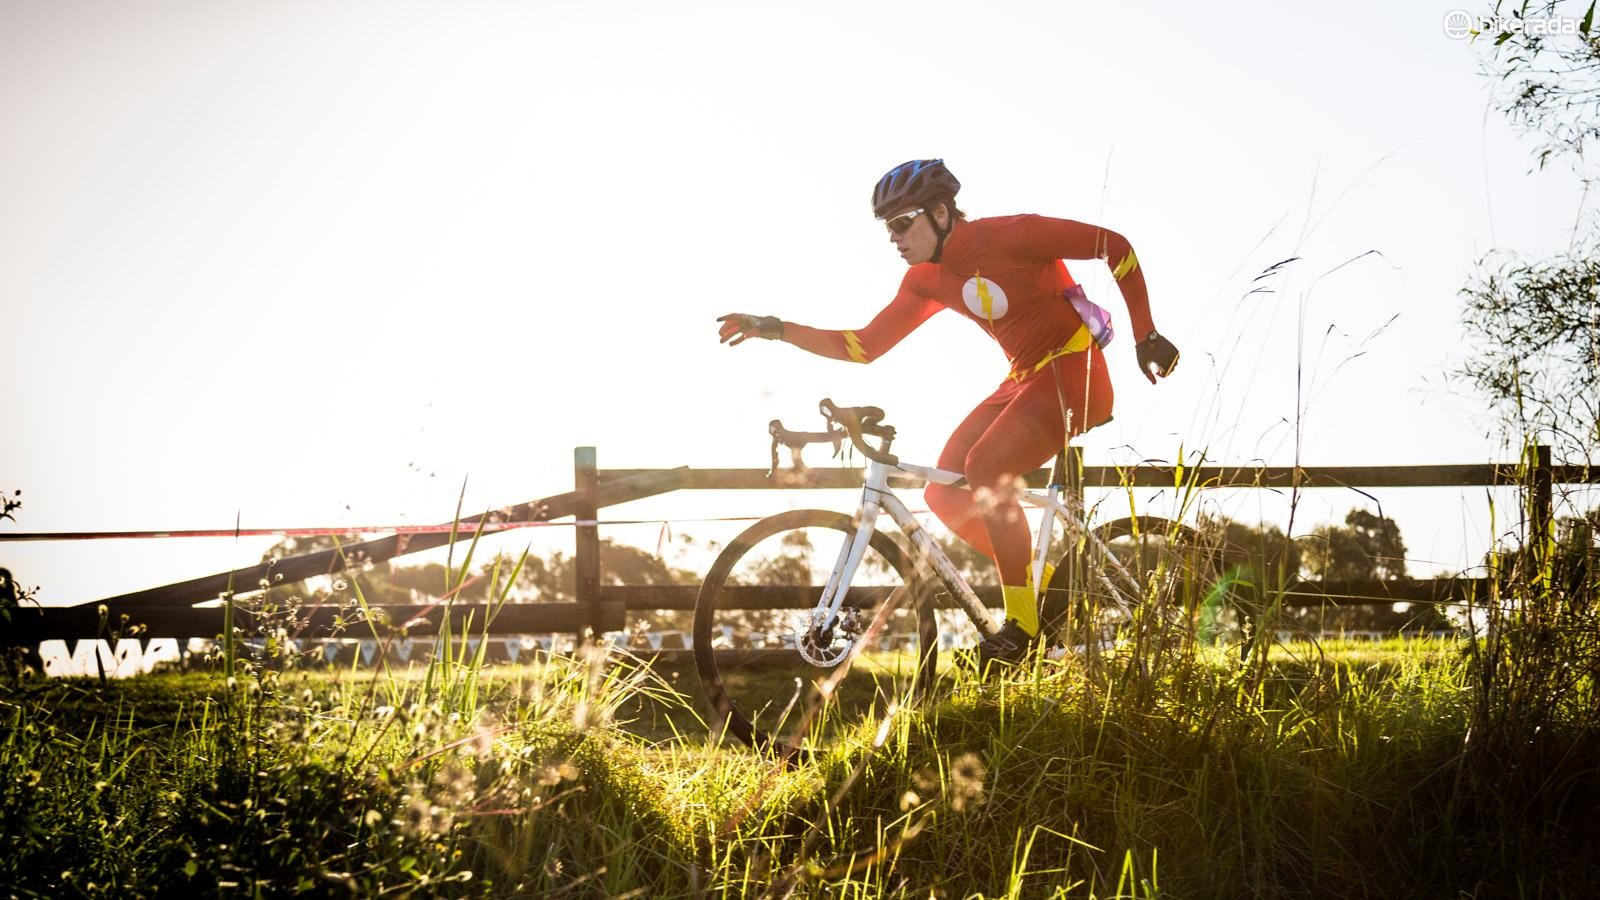 The Flash does occasionally make an appearance at your local cyclocross race